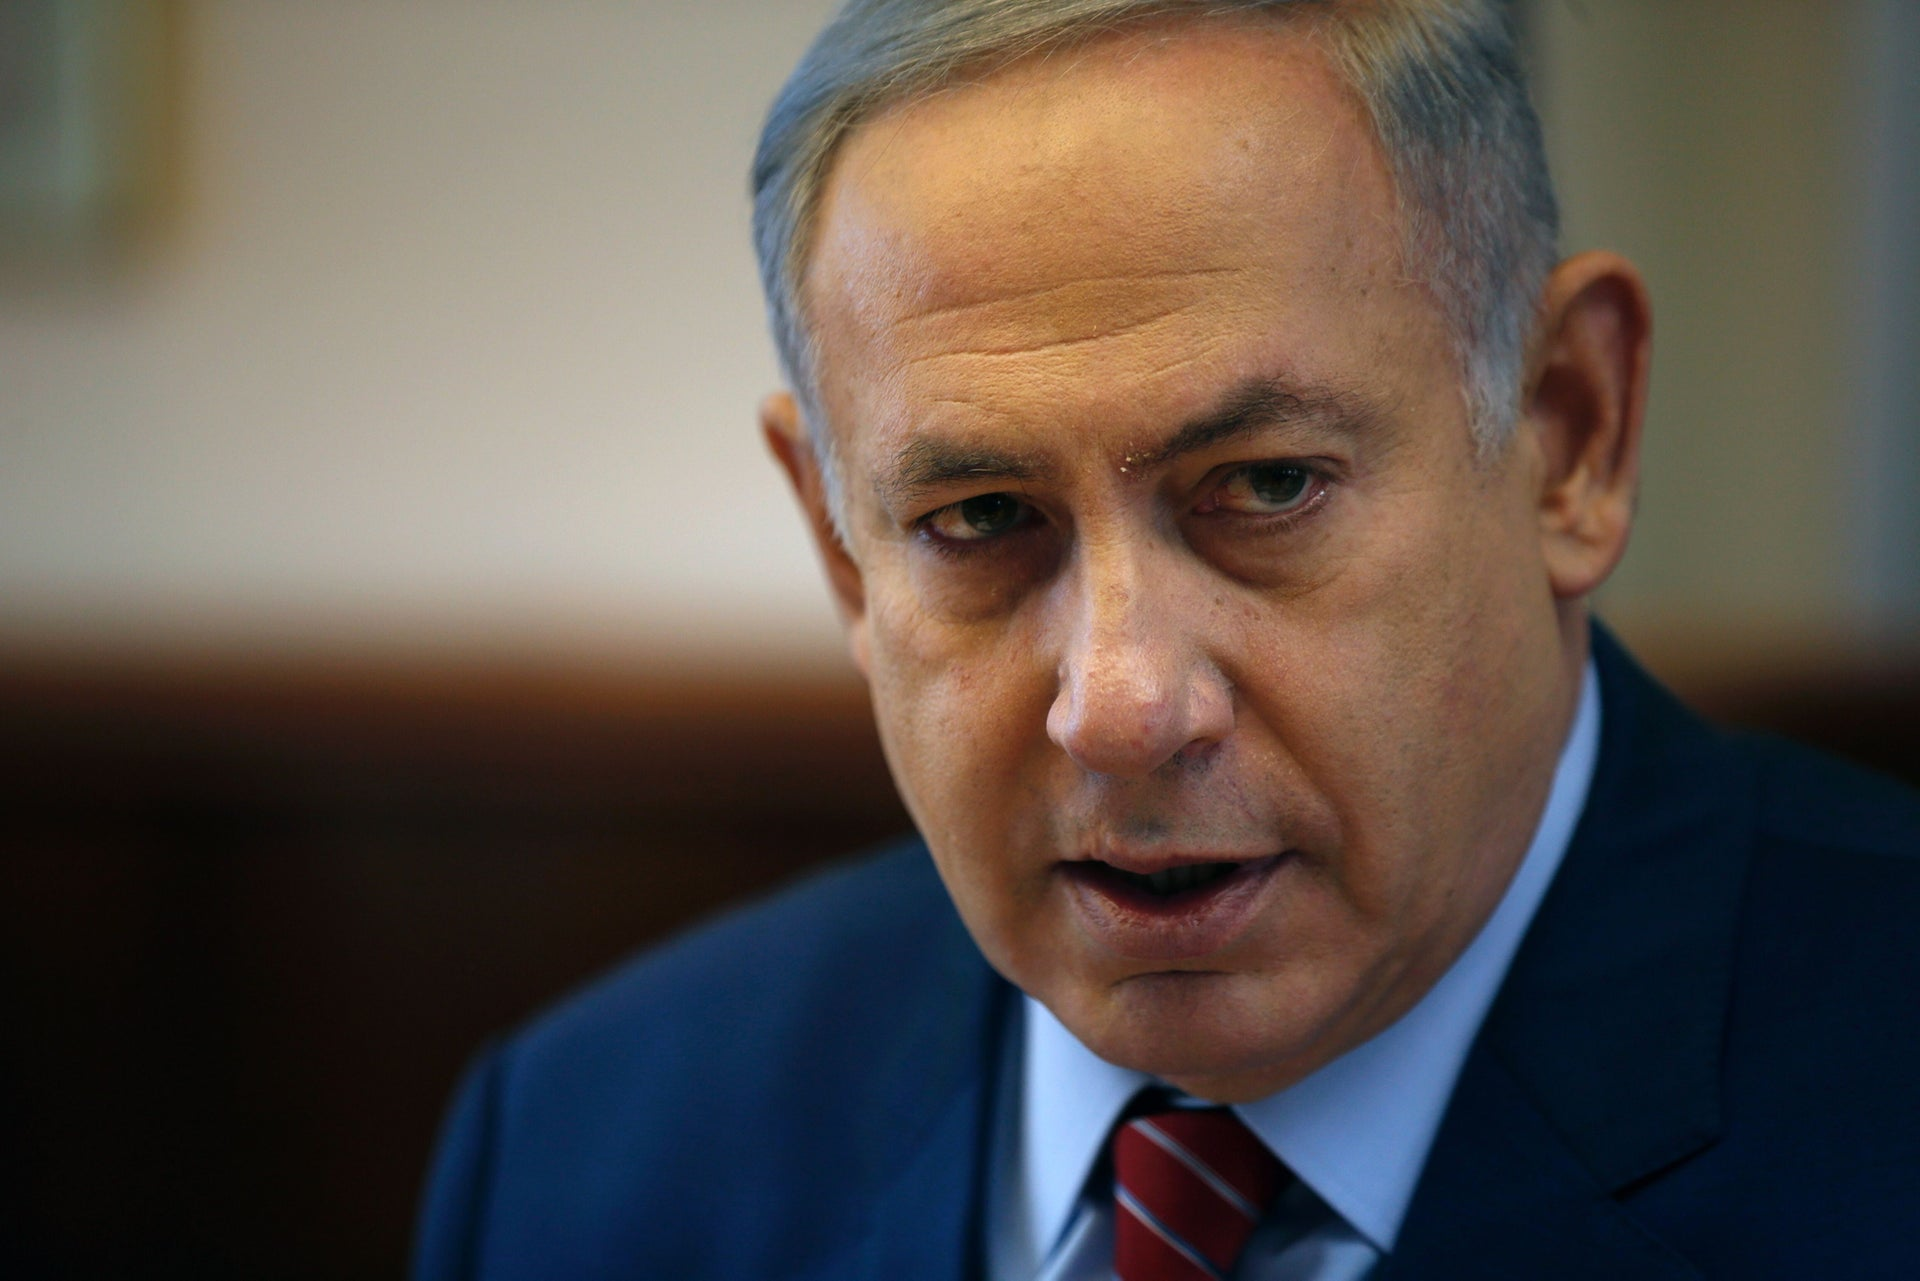 Israeli Prime Minister Benjamin Netanyahu chairs the weekly cabinet meeting at his Jerusalem office on April 3, 2016.